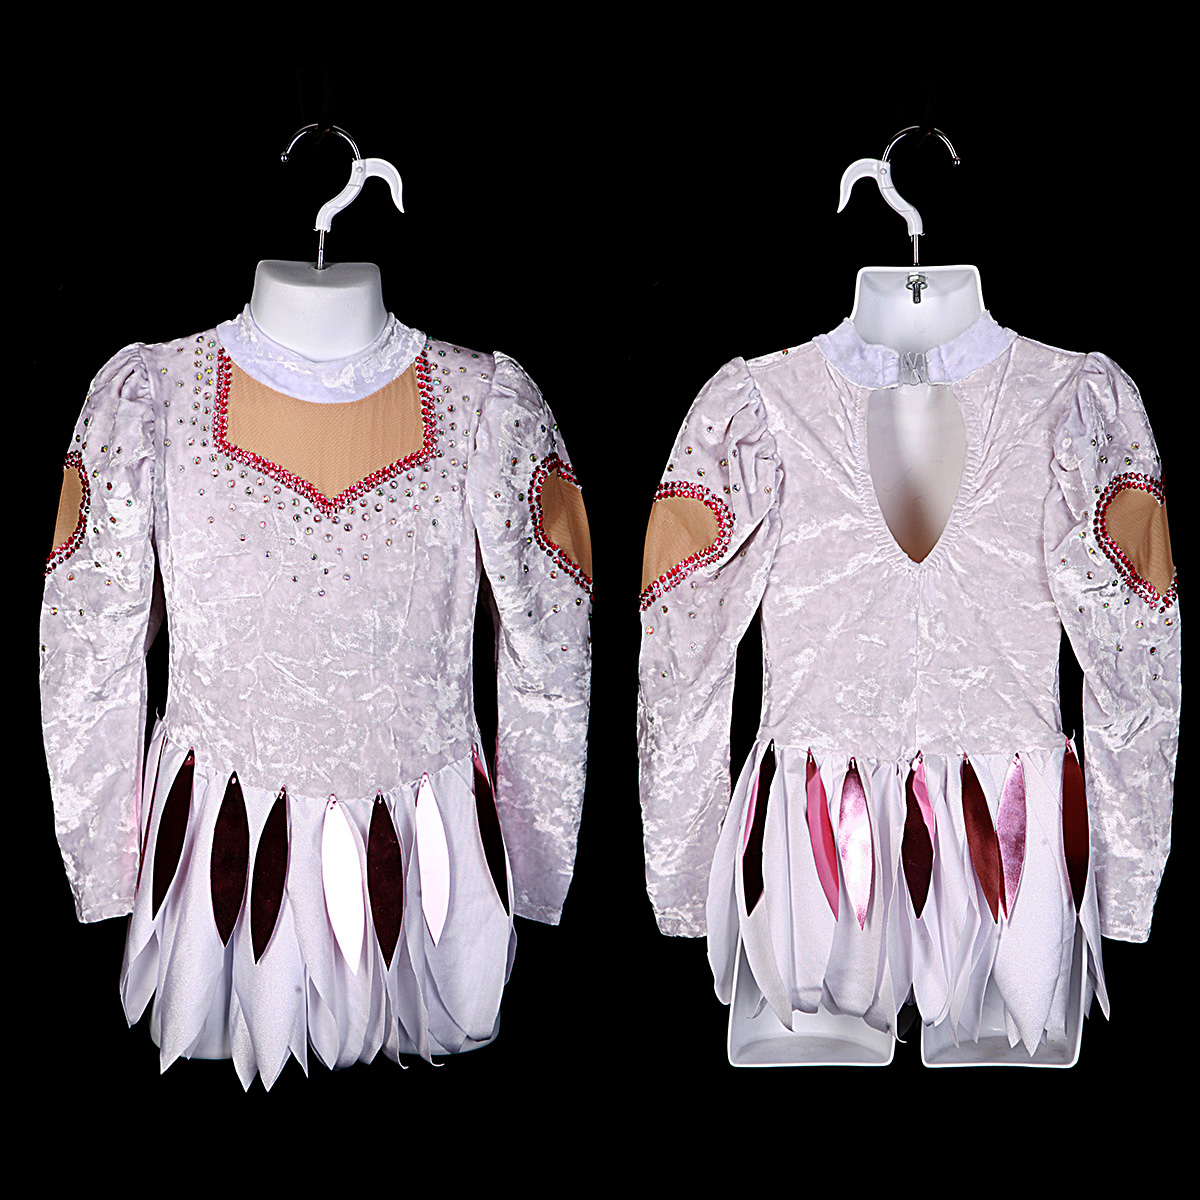 Front and Back views of a small white figure skating dress.